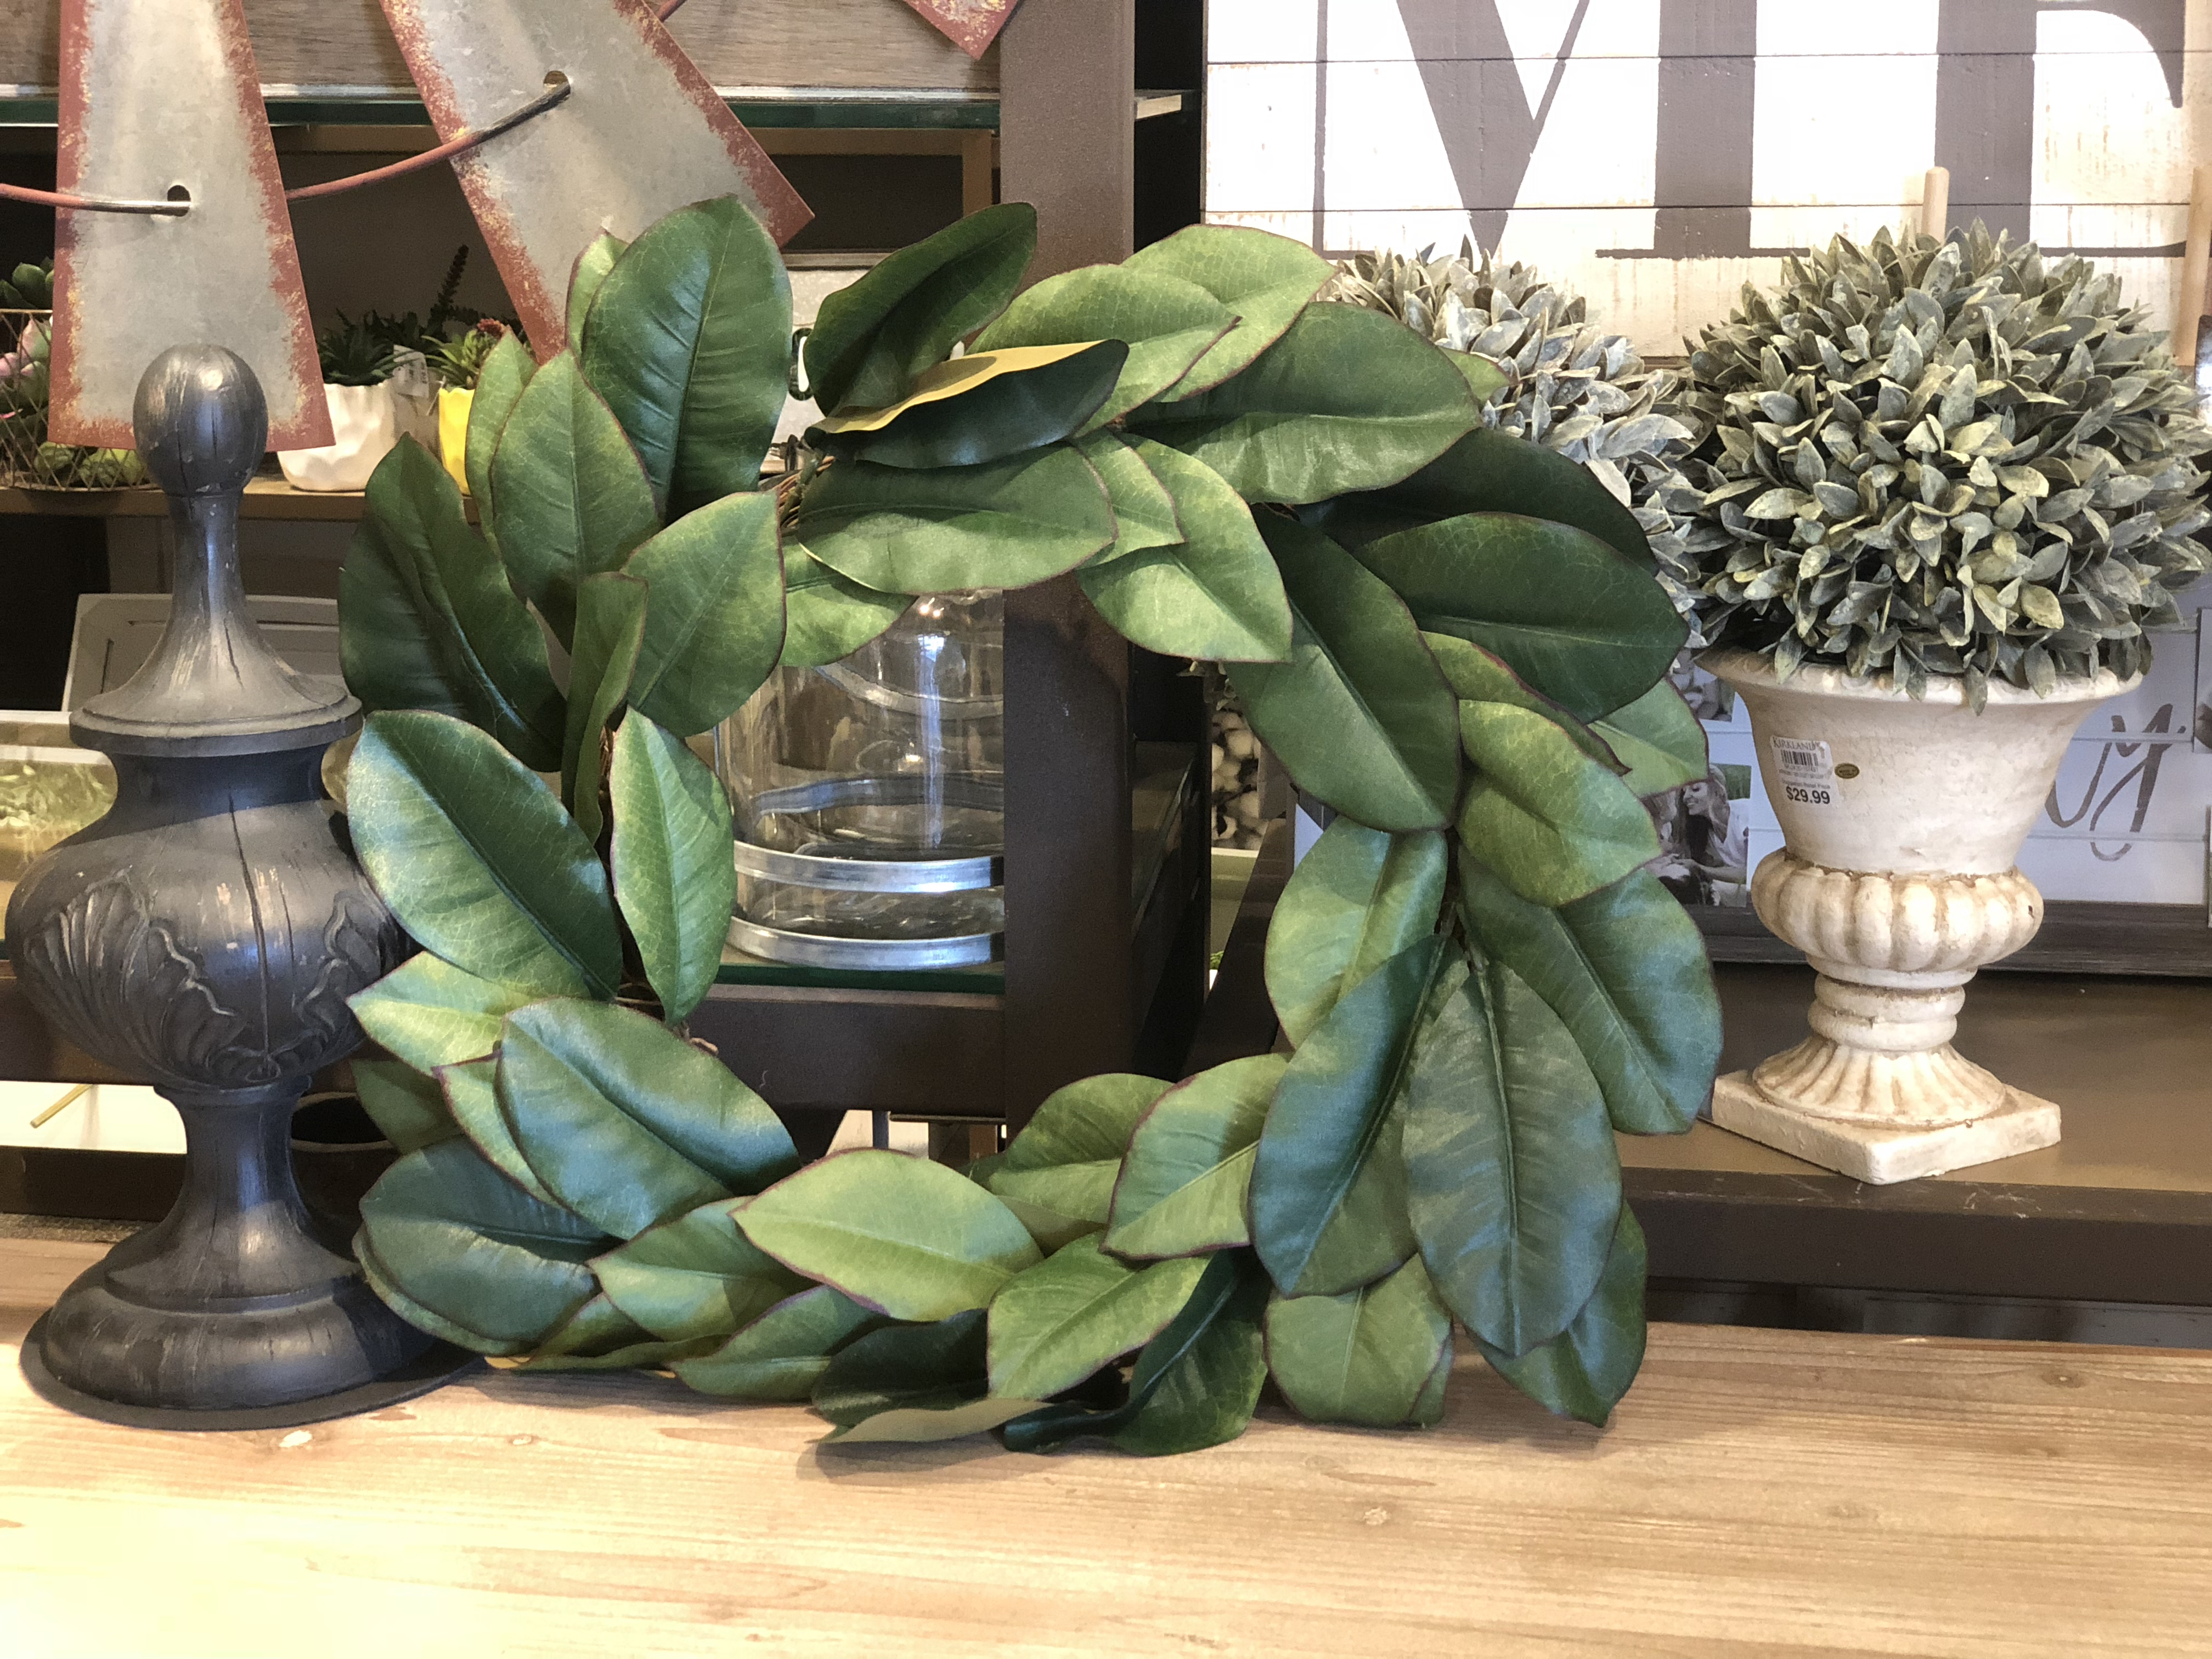 Kirkland's Magnolia Wreath frugal look-alike